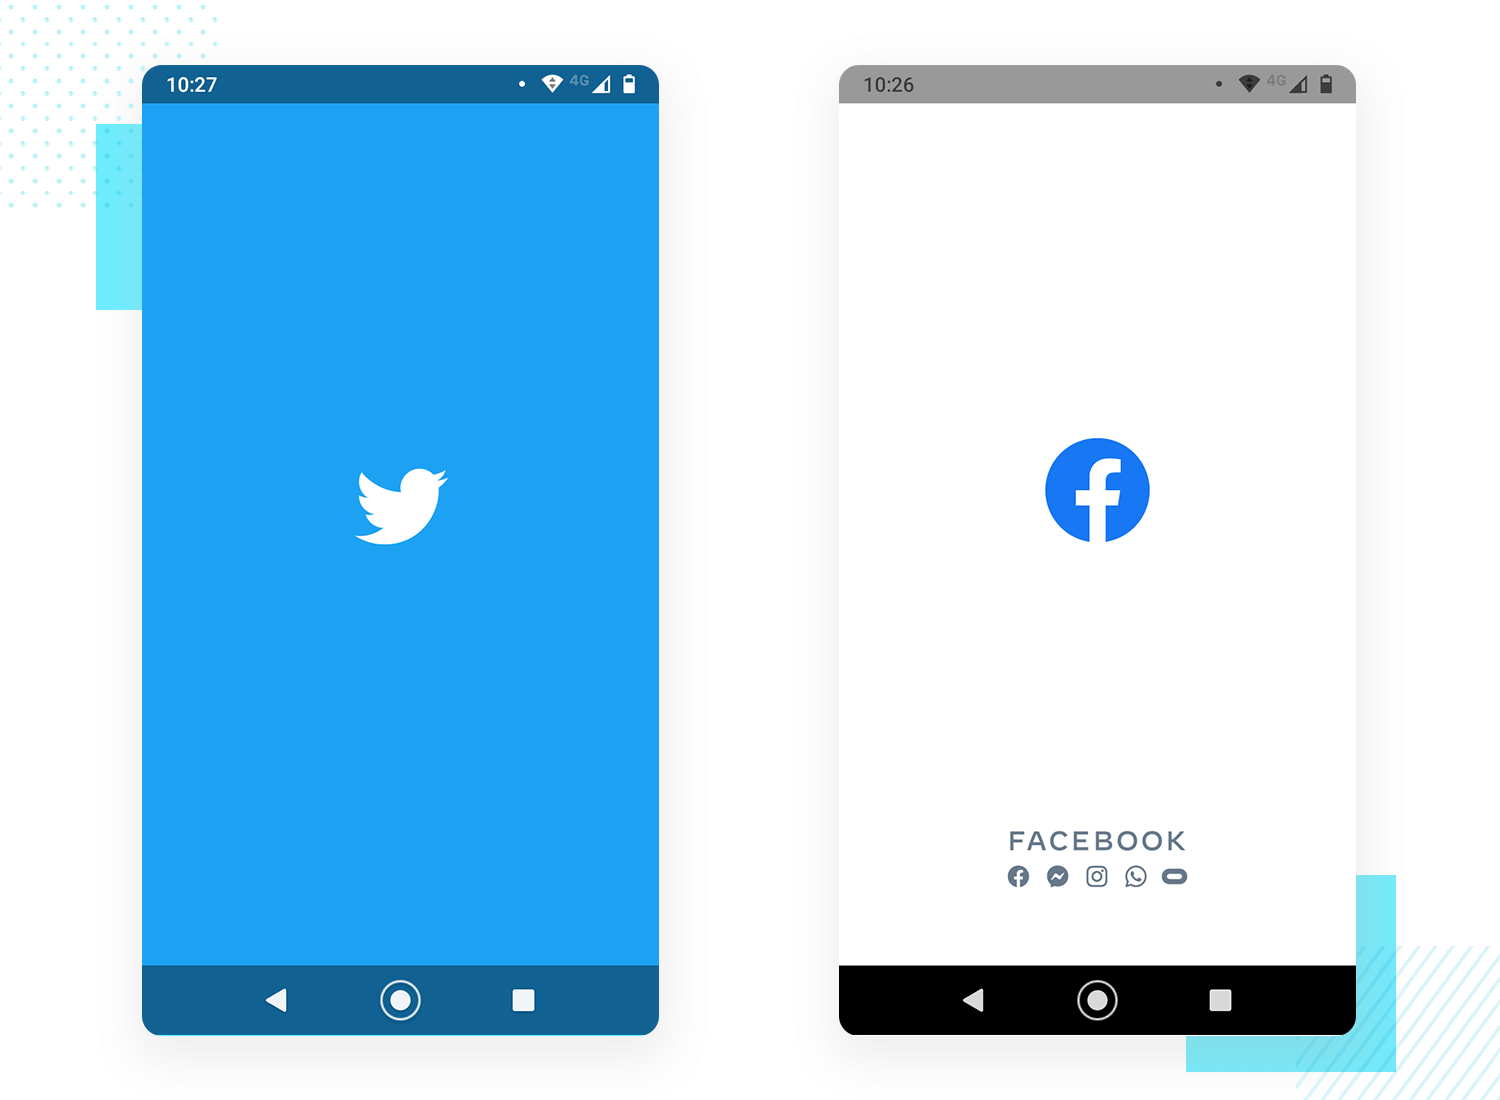 twitter and facebook splash screen design examples